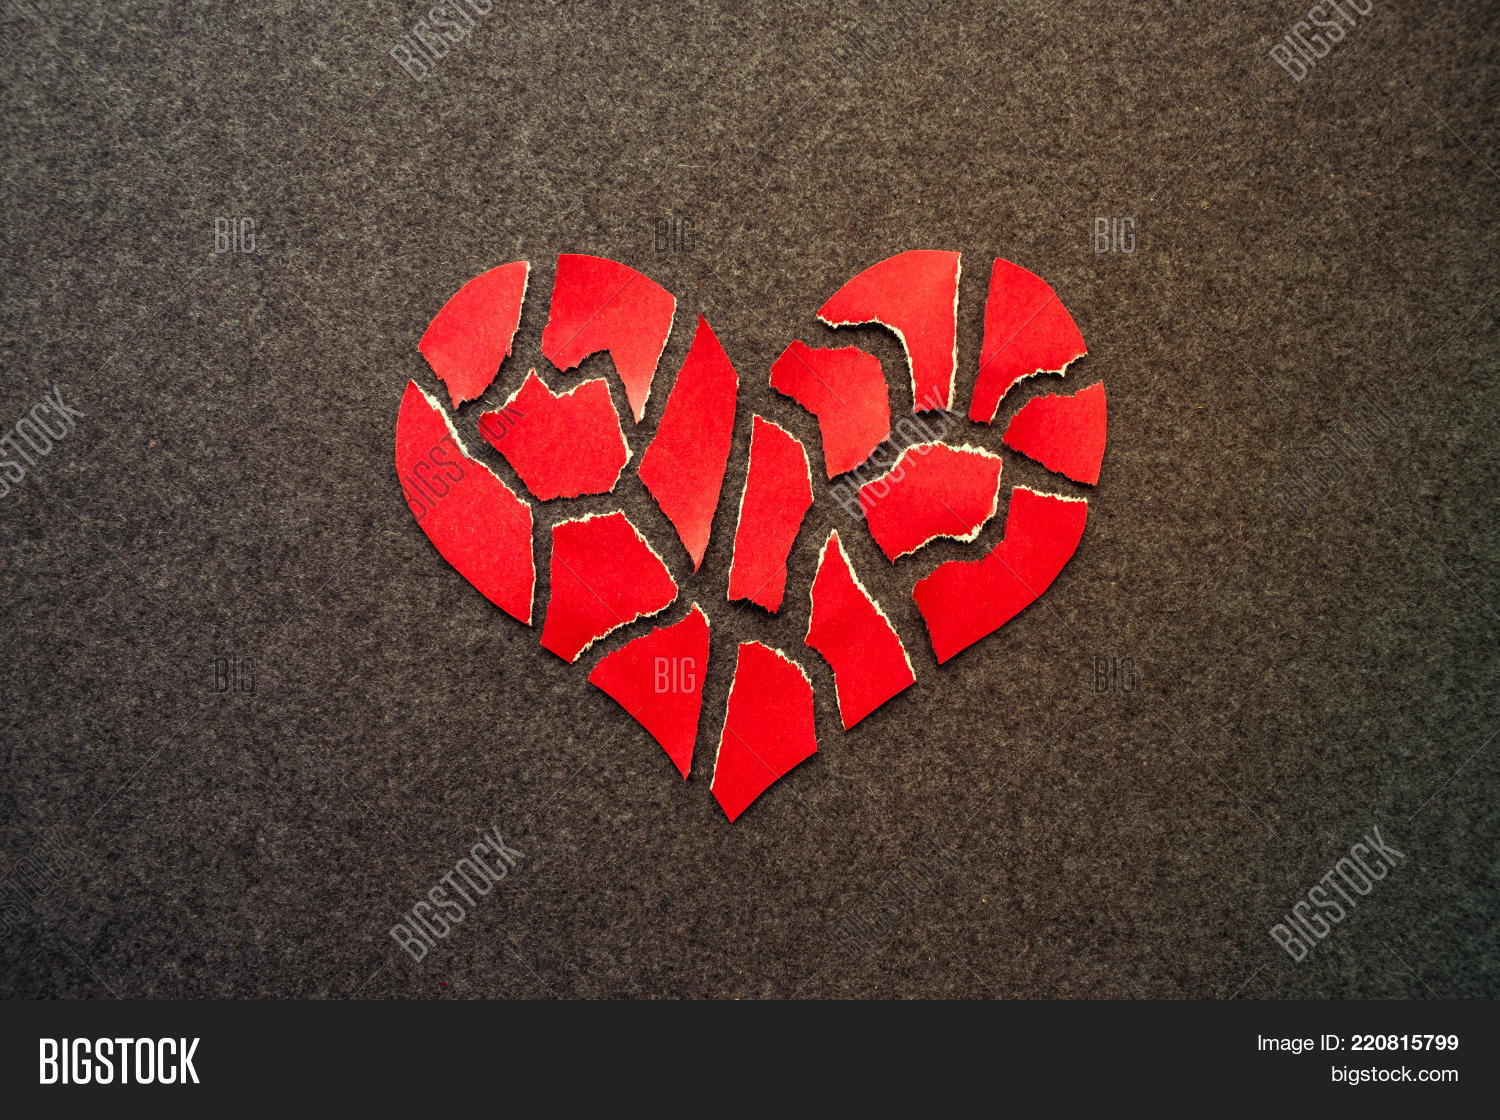 Paper Red Broken Heart Image Photo Free Trial Bigstock